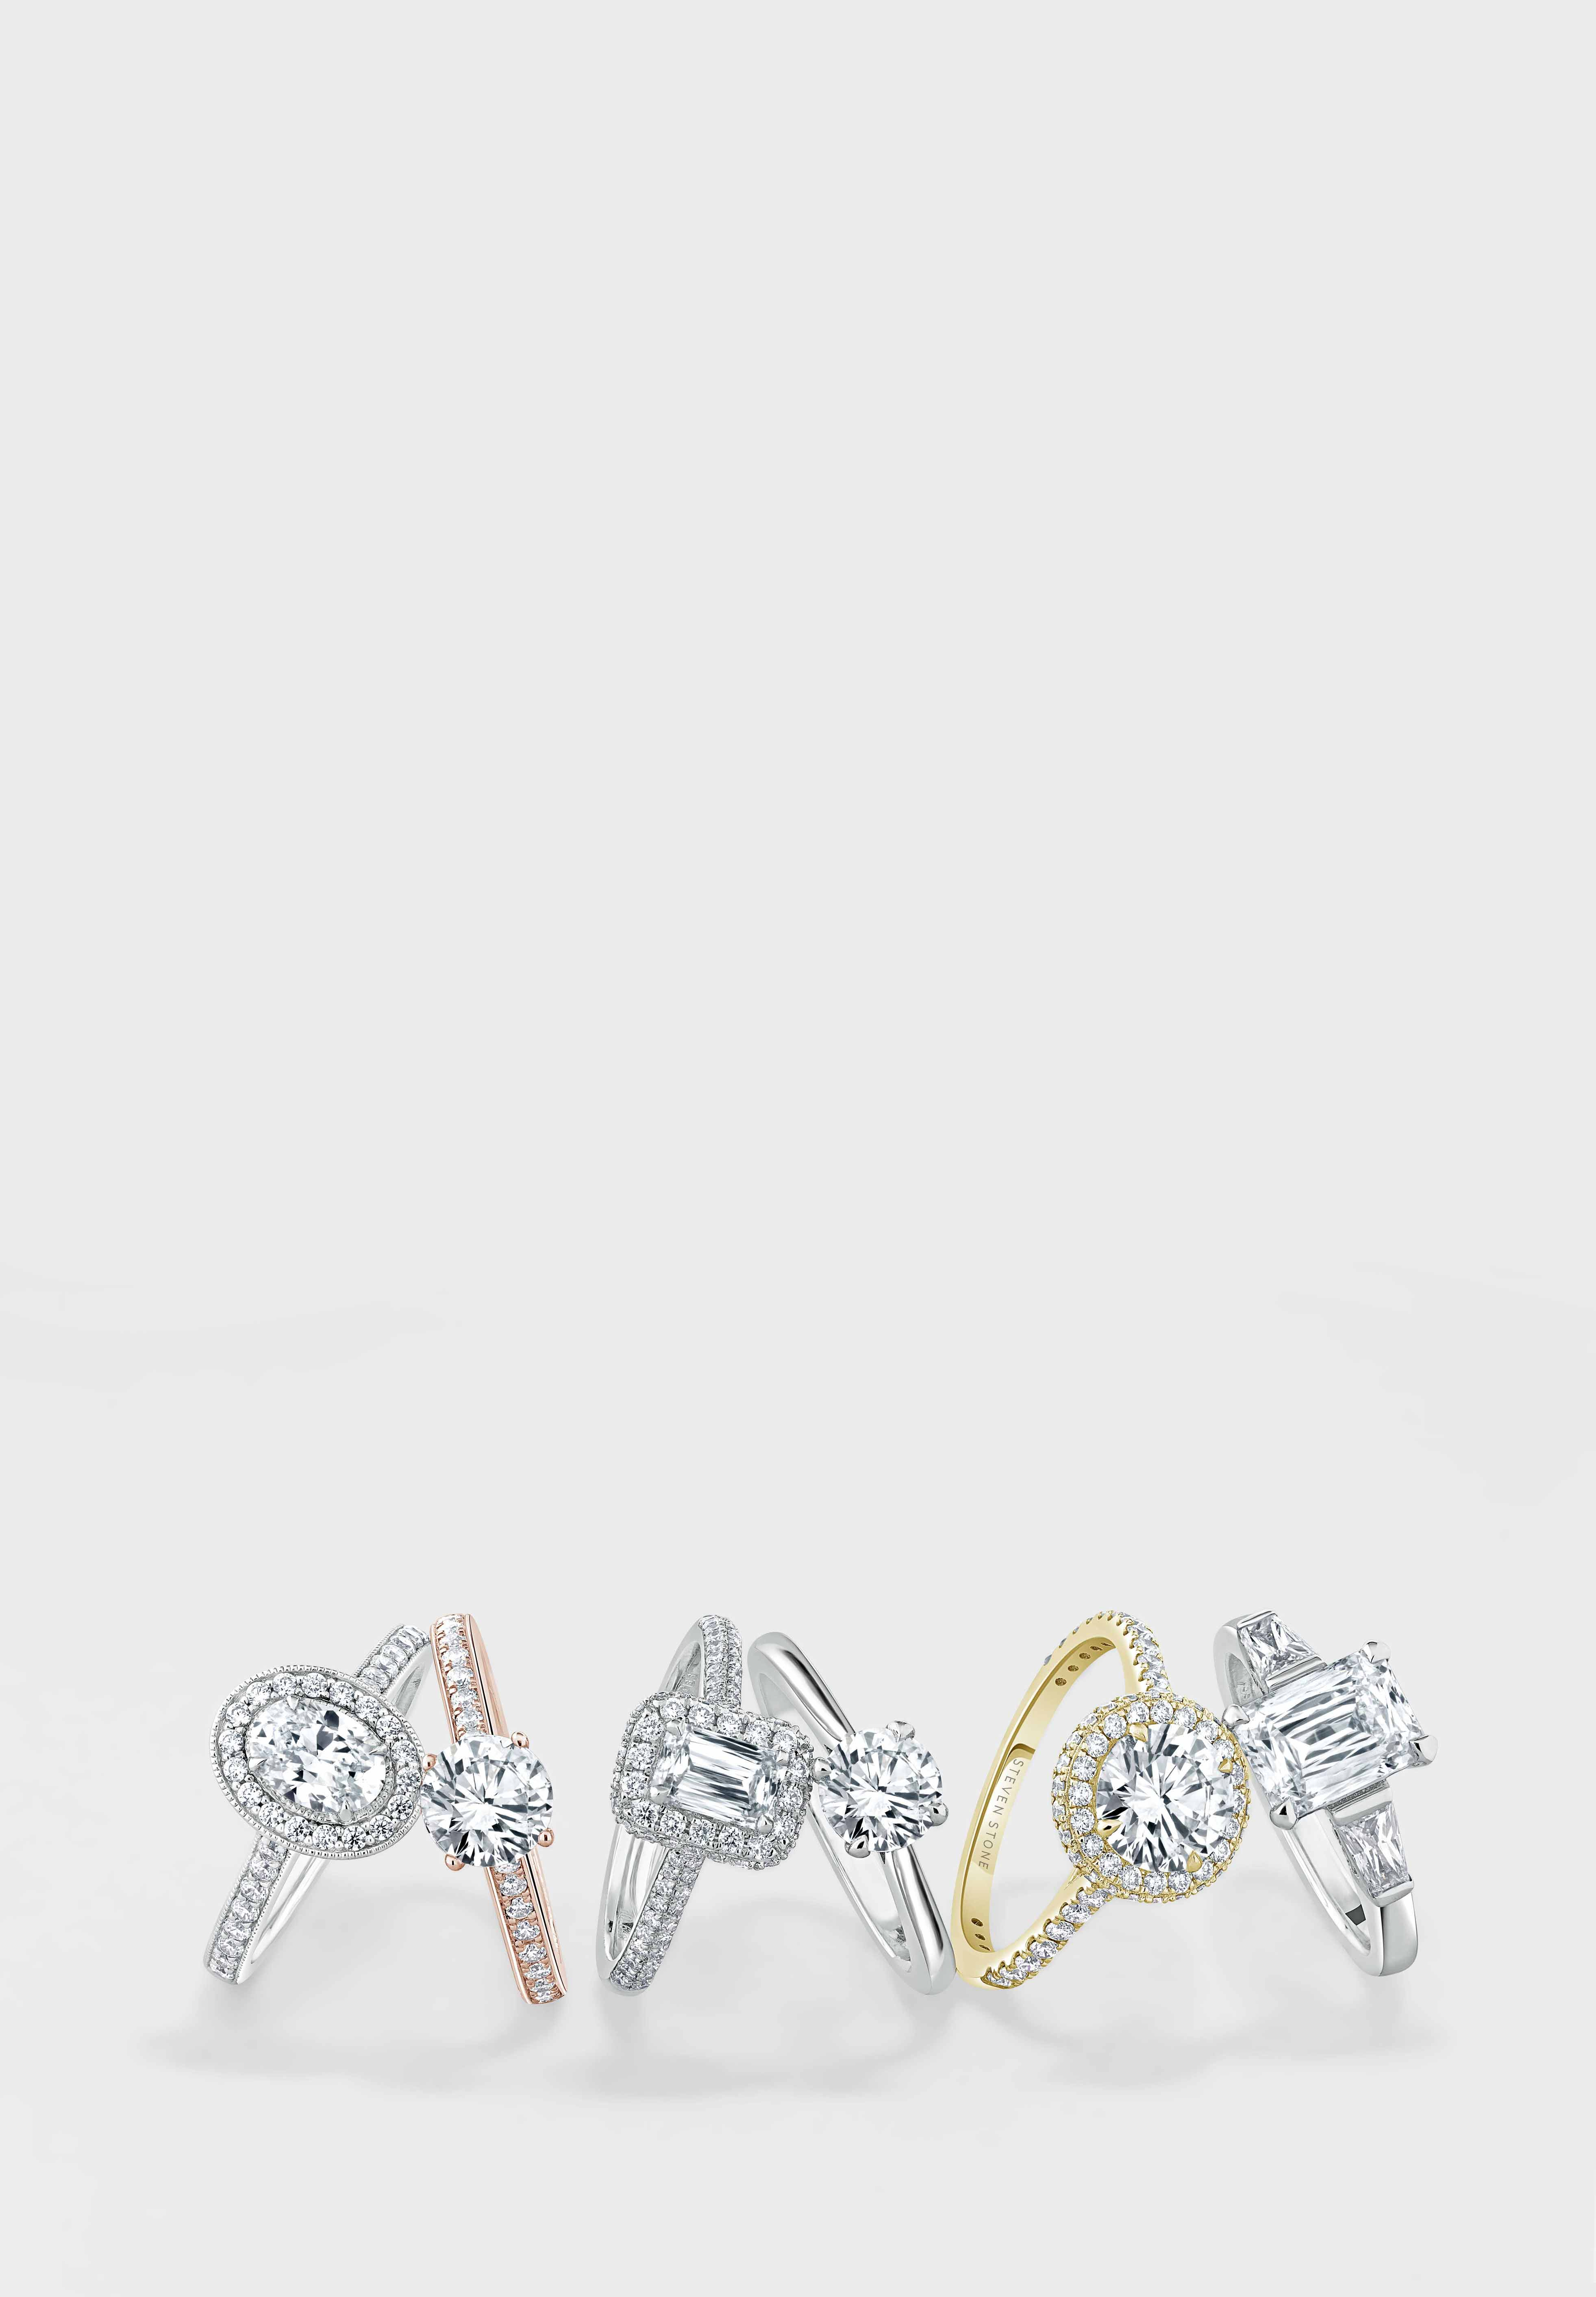 Yellow Gold Round Brilliant Engagement Rings - Steven Stone